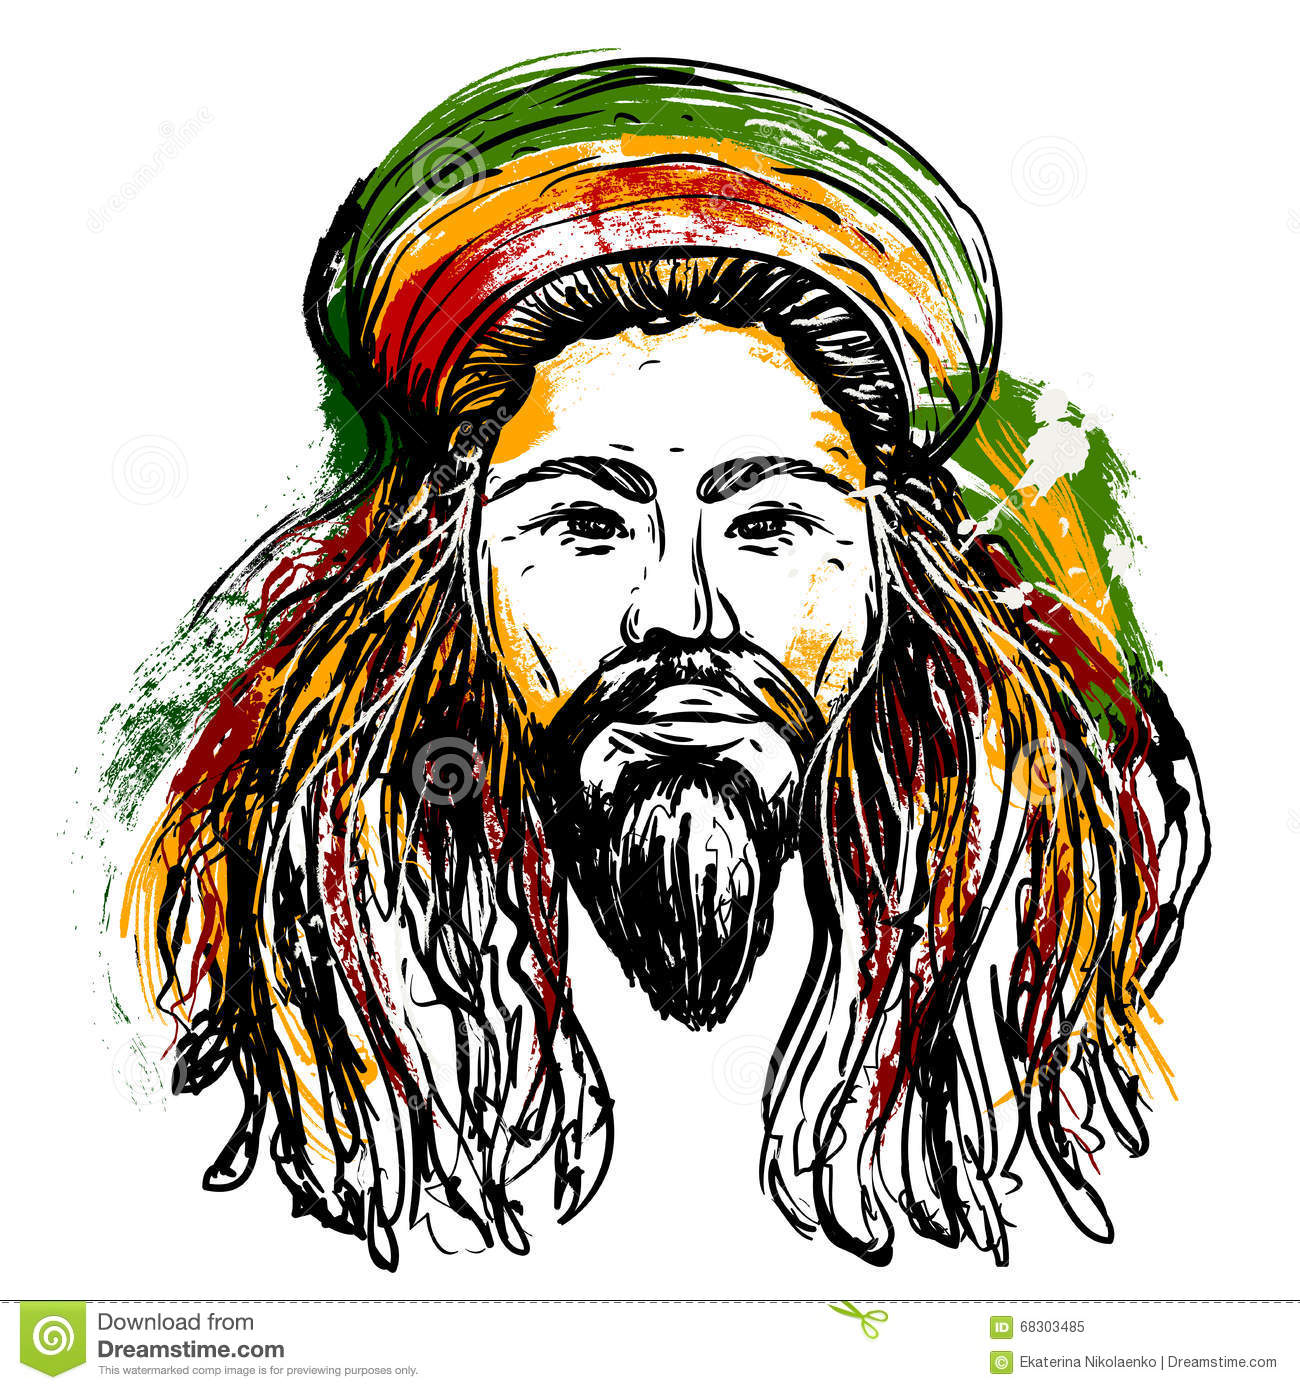 Tato Art Styles: Rastaman Cartoons, Illustrations & Vector Stock Images